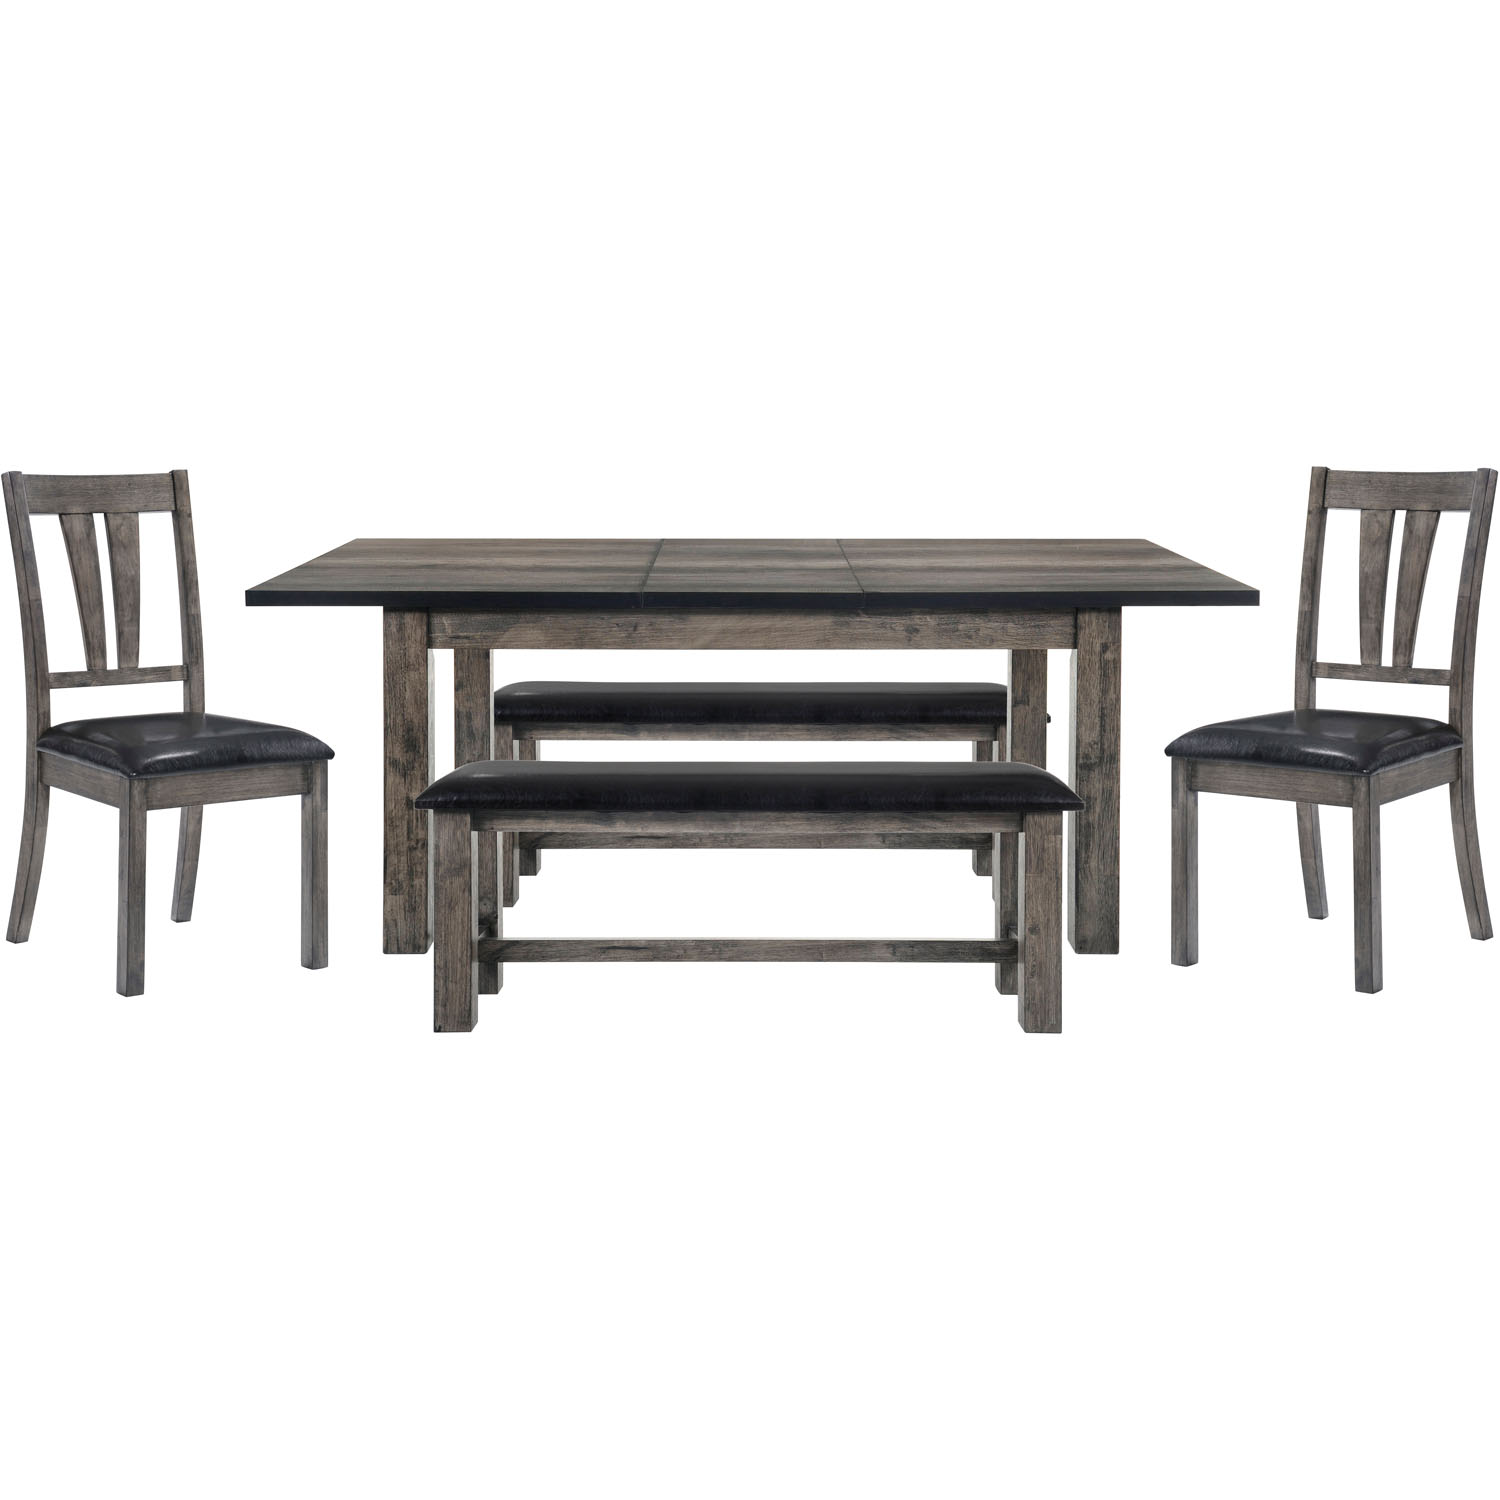 Cambridge Drexel Dining 5-Piece Set: Table, Two Side Chairs and Two Benches